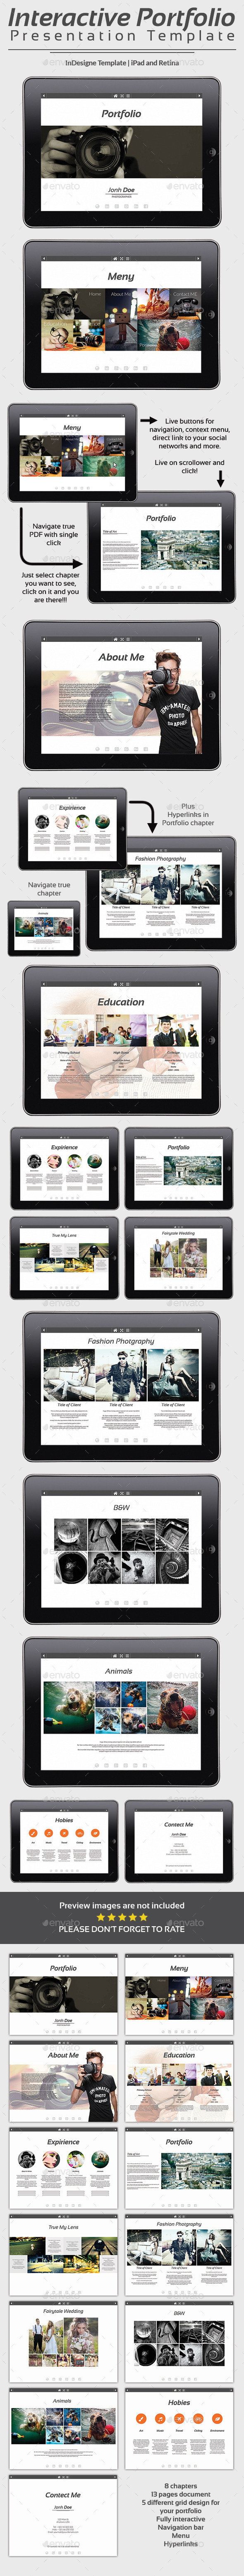 Interactive Portfolio Prezentation No1 - Digital Magazines ePublishing